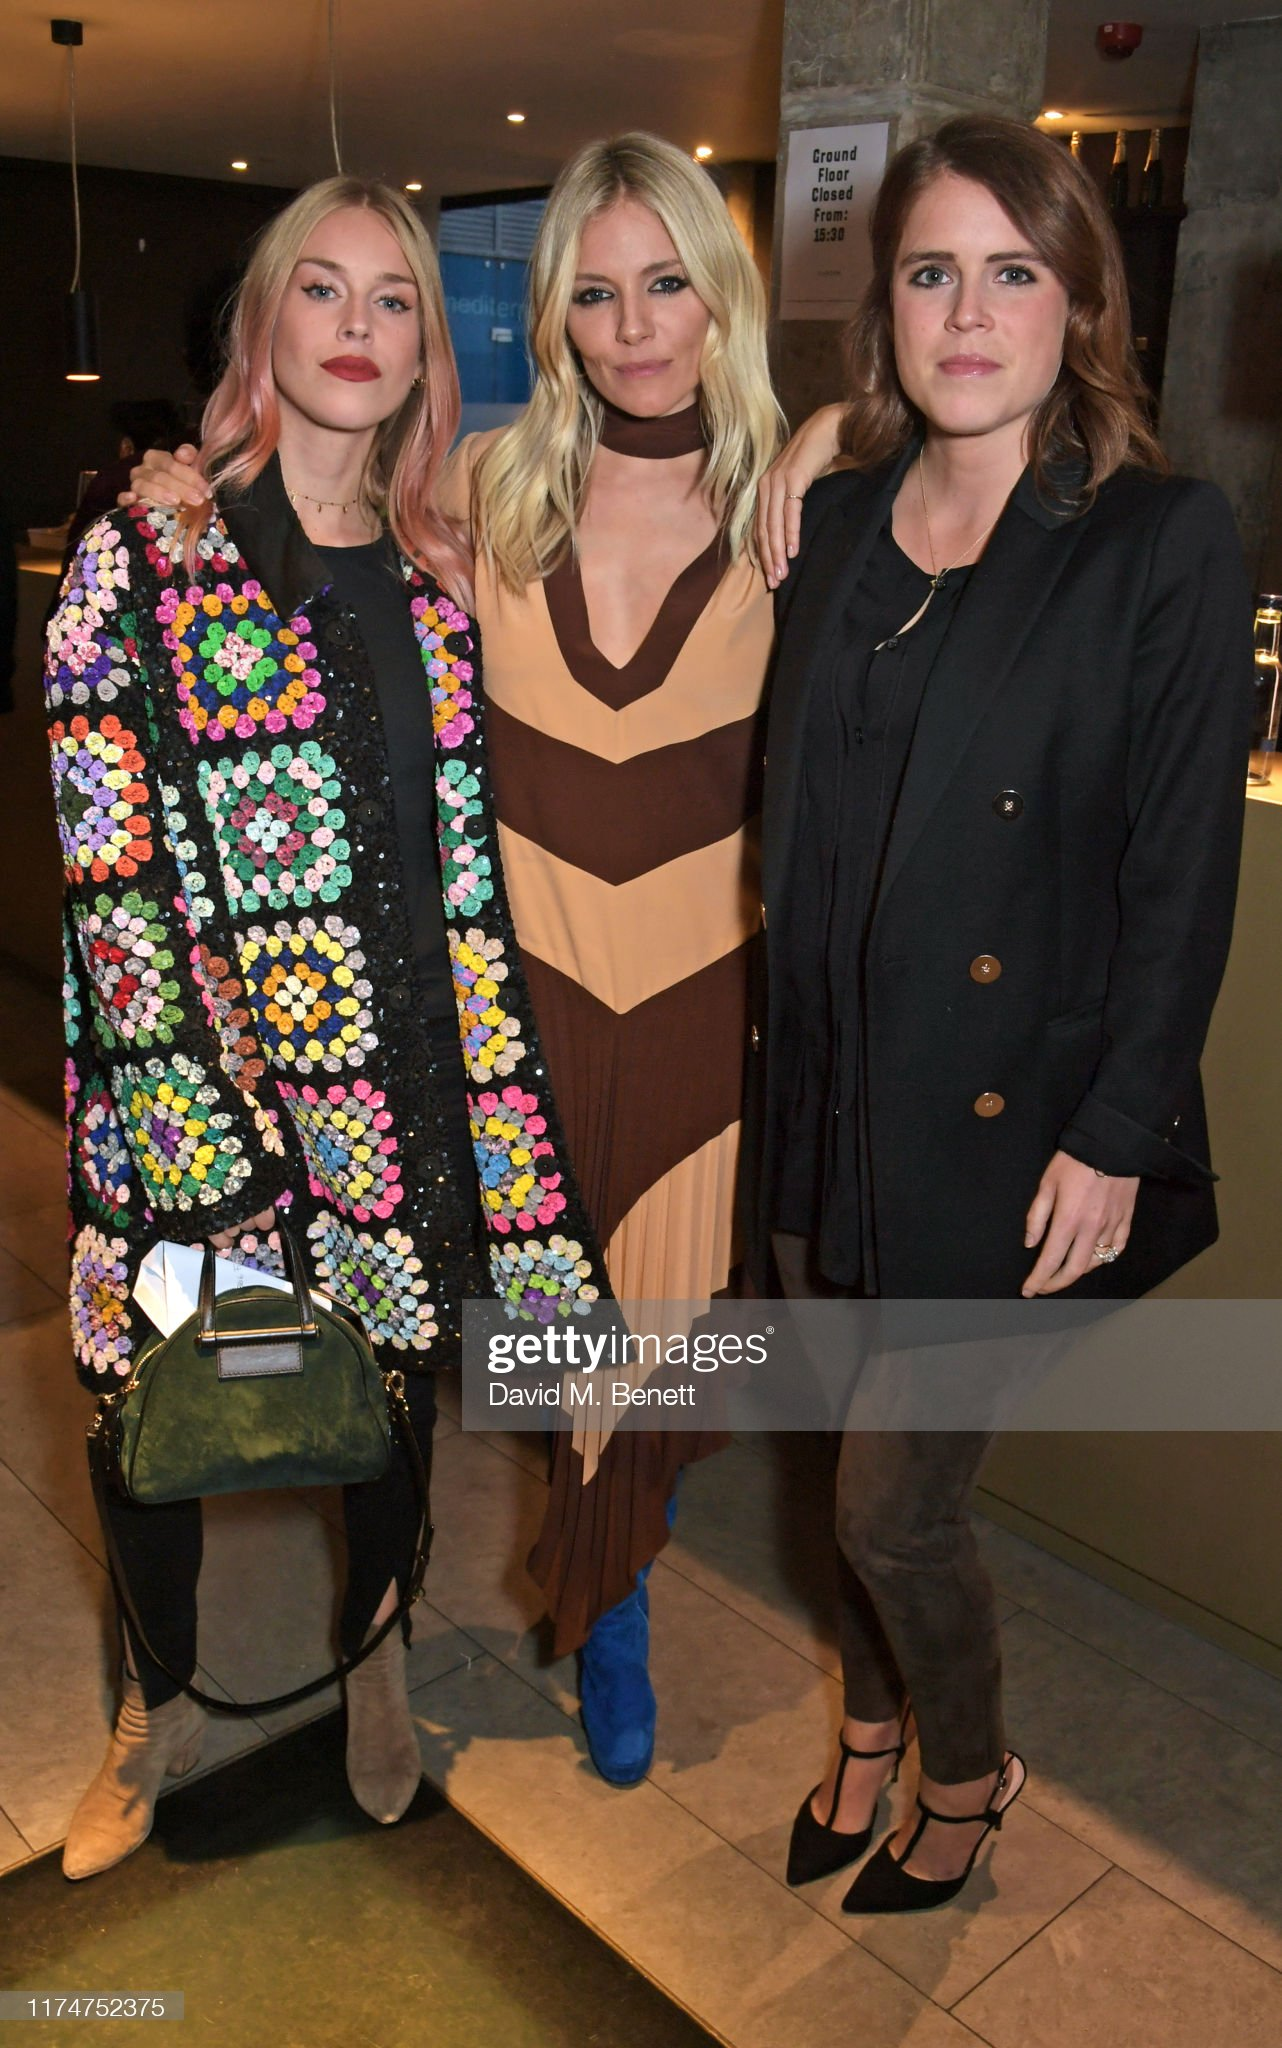 https://media.gettyimages.com/photos/mary-charteris-sienna-miller-and-princess-eugenie-of-york-attend-a-picture-id1174752375?s=2048x2048